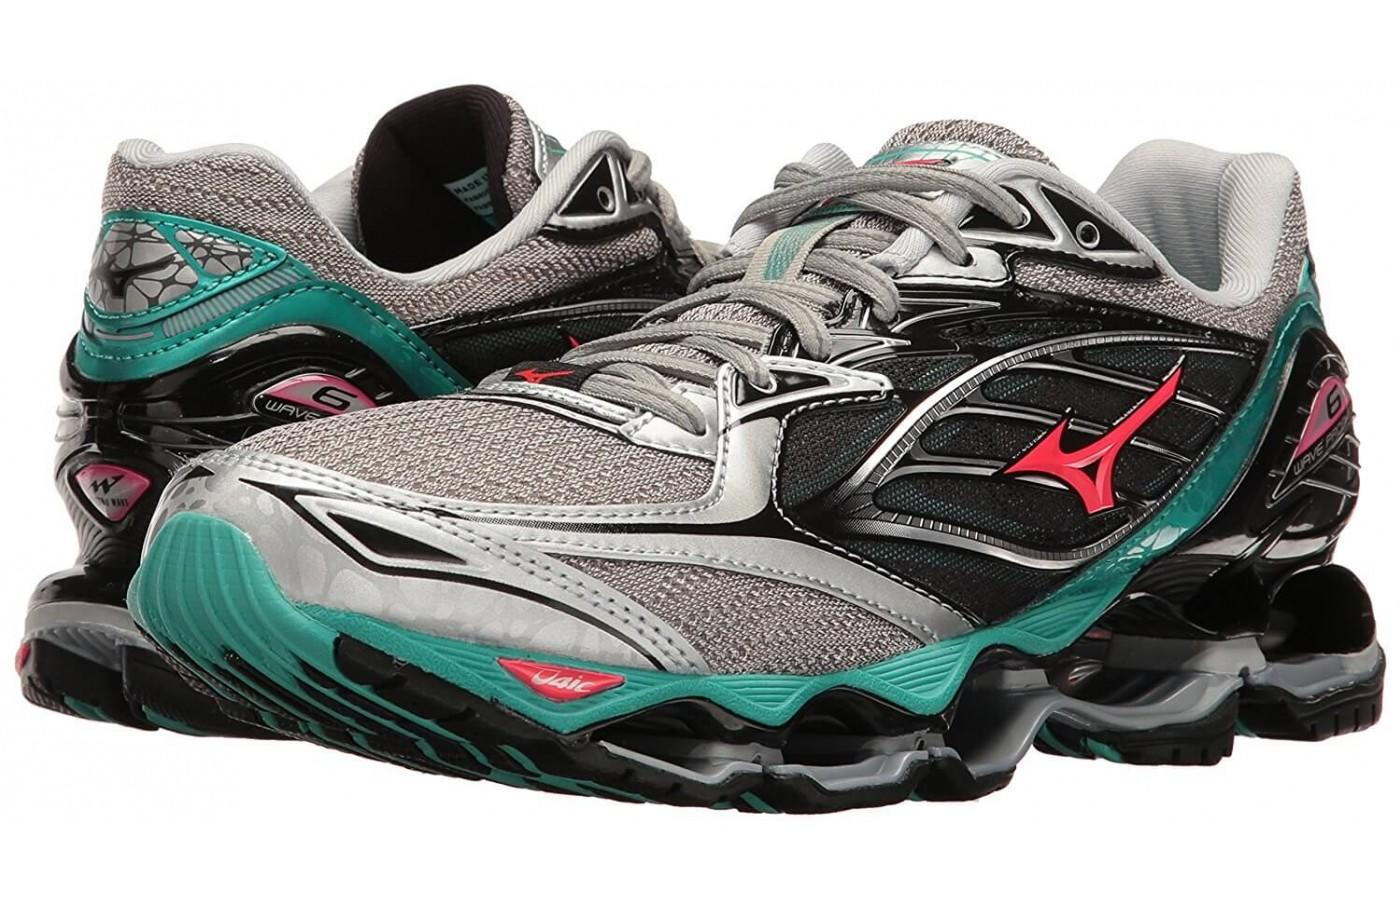 The Mizuno Wave Prophecy 6 is a neutral daily trainer.